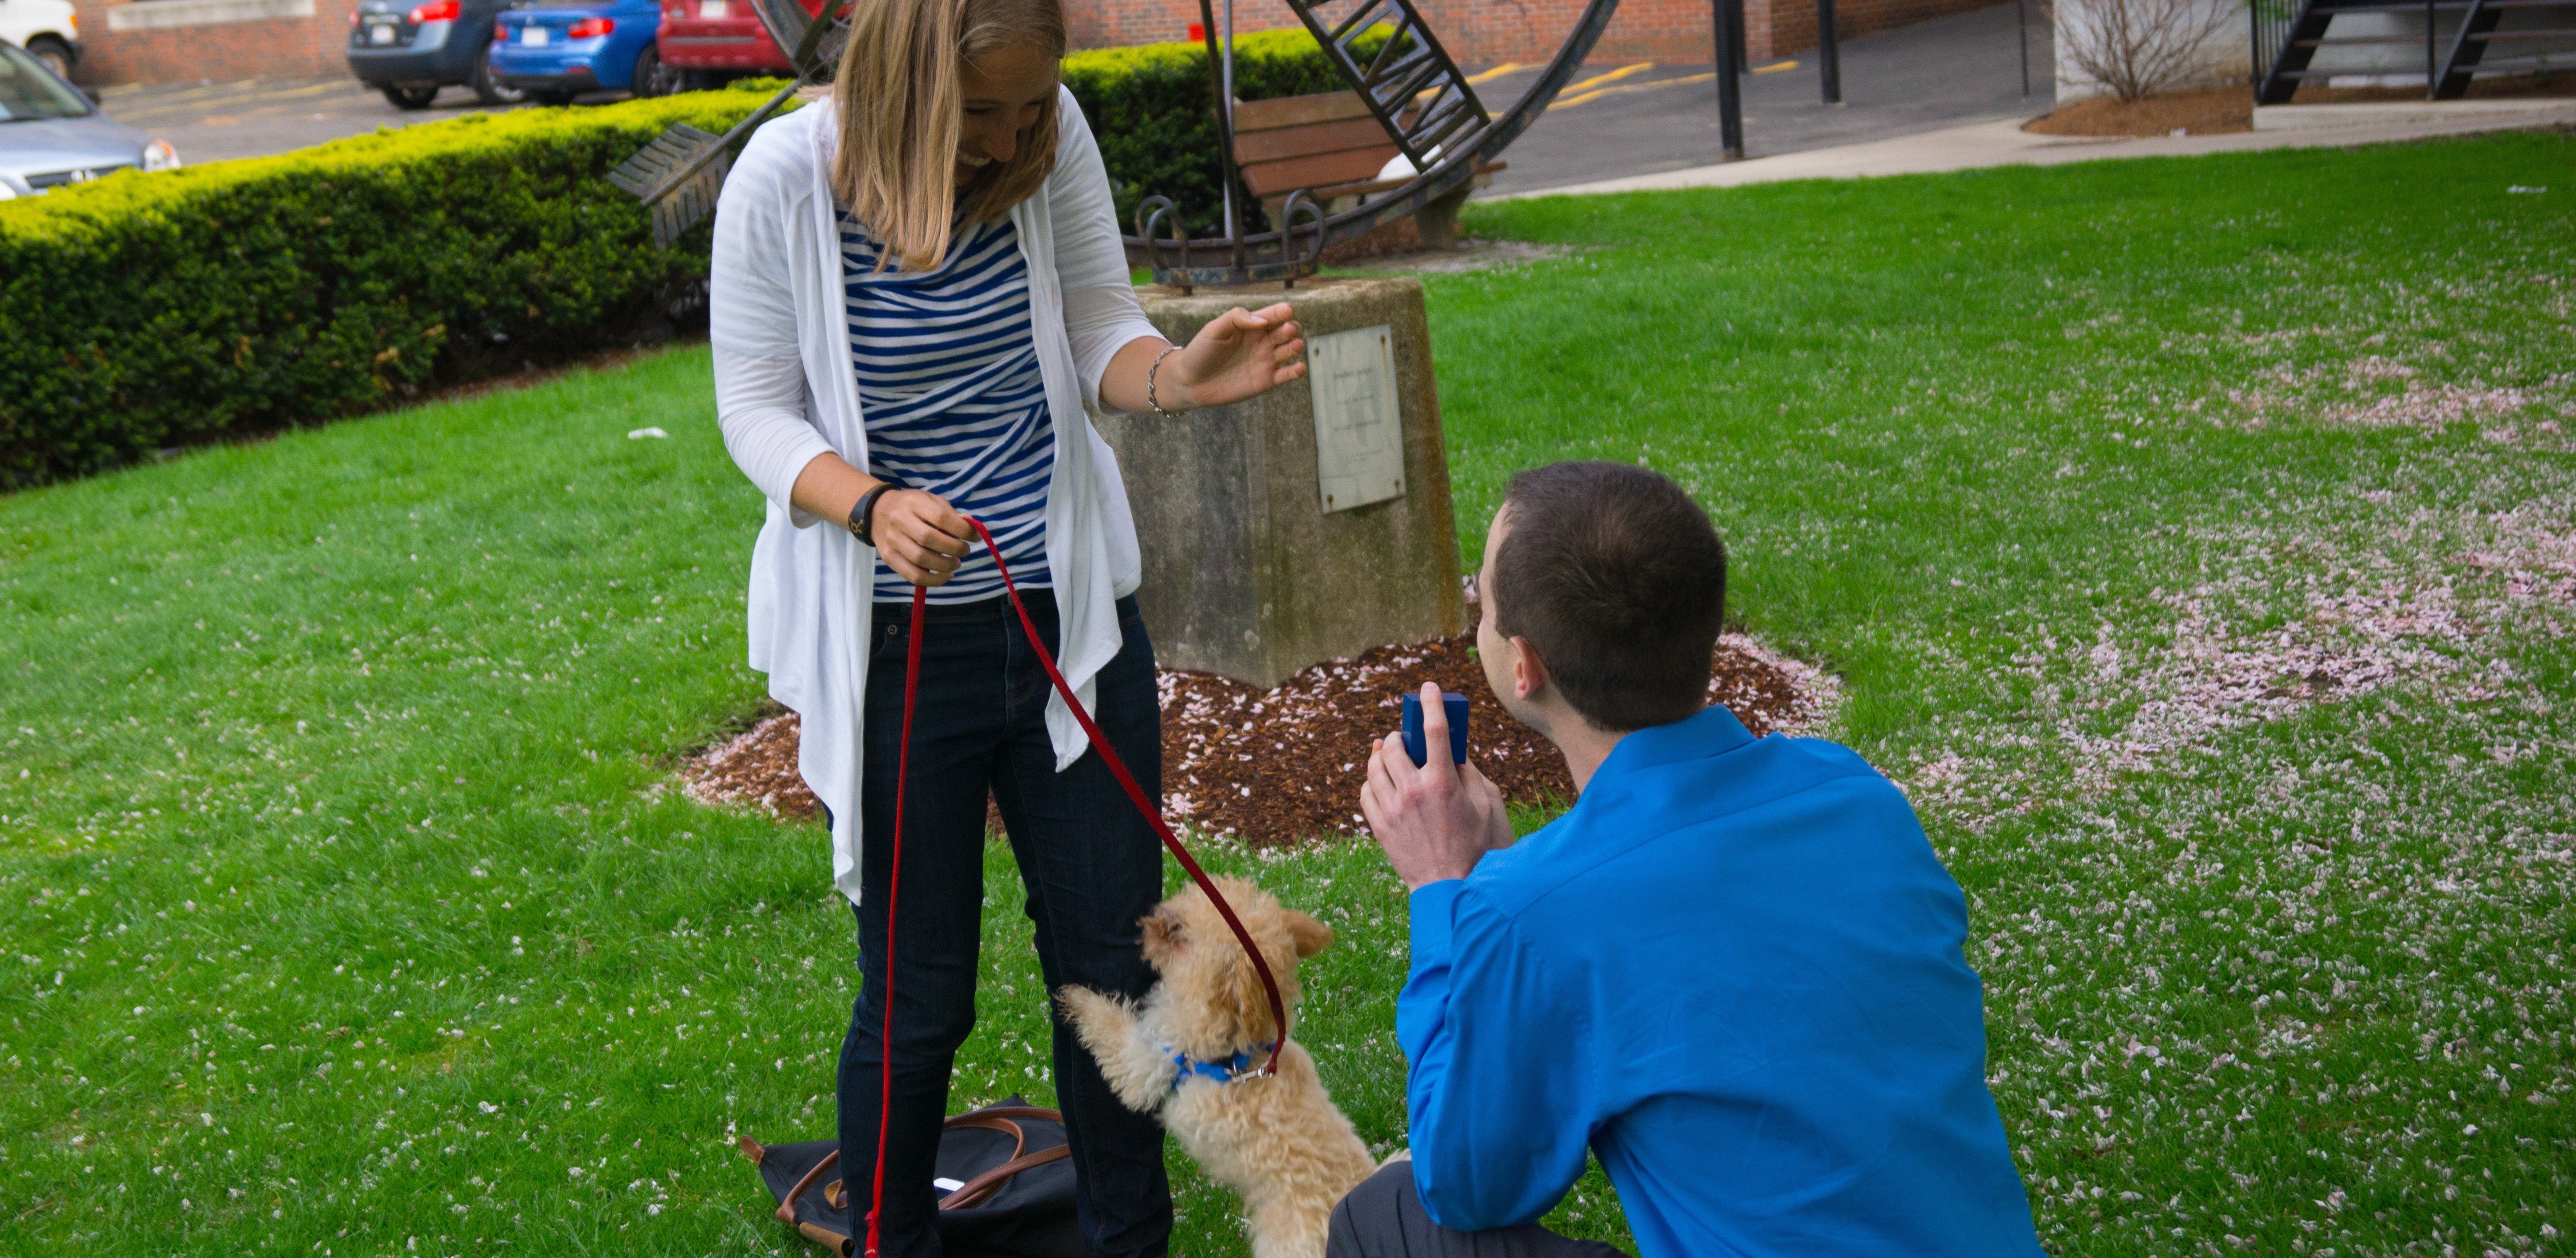 Ideas For Using Dogs in Proposals